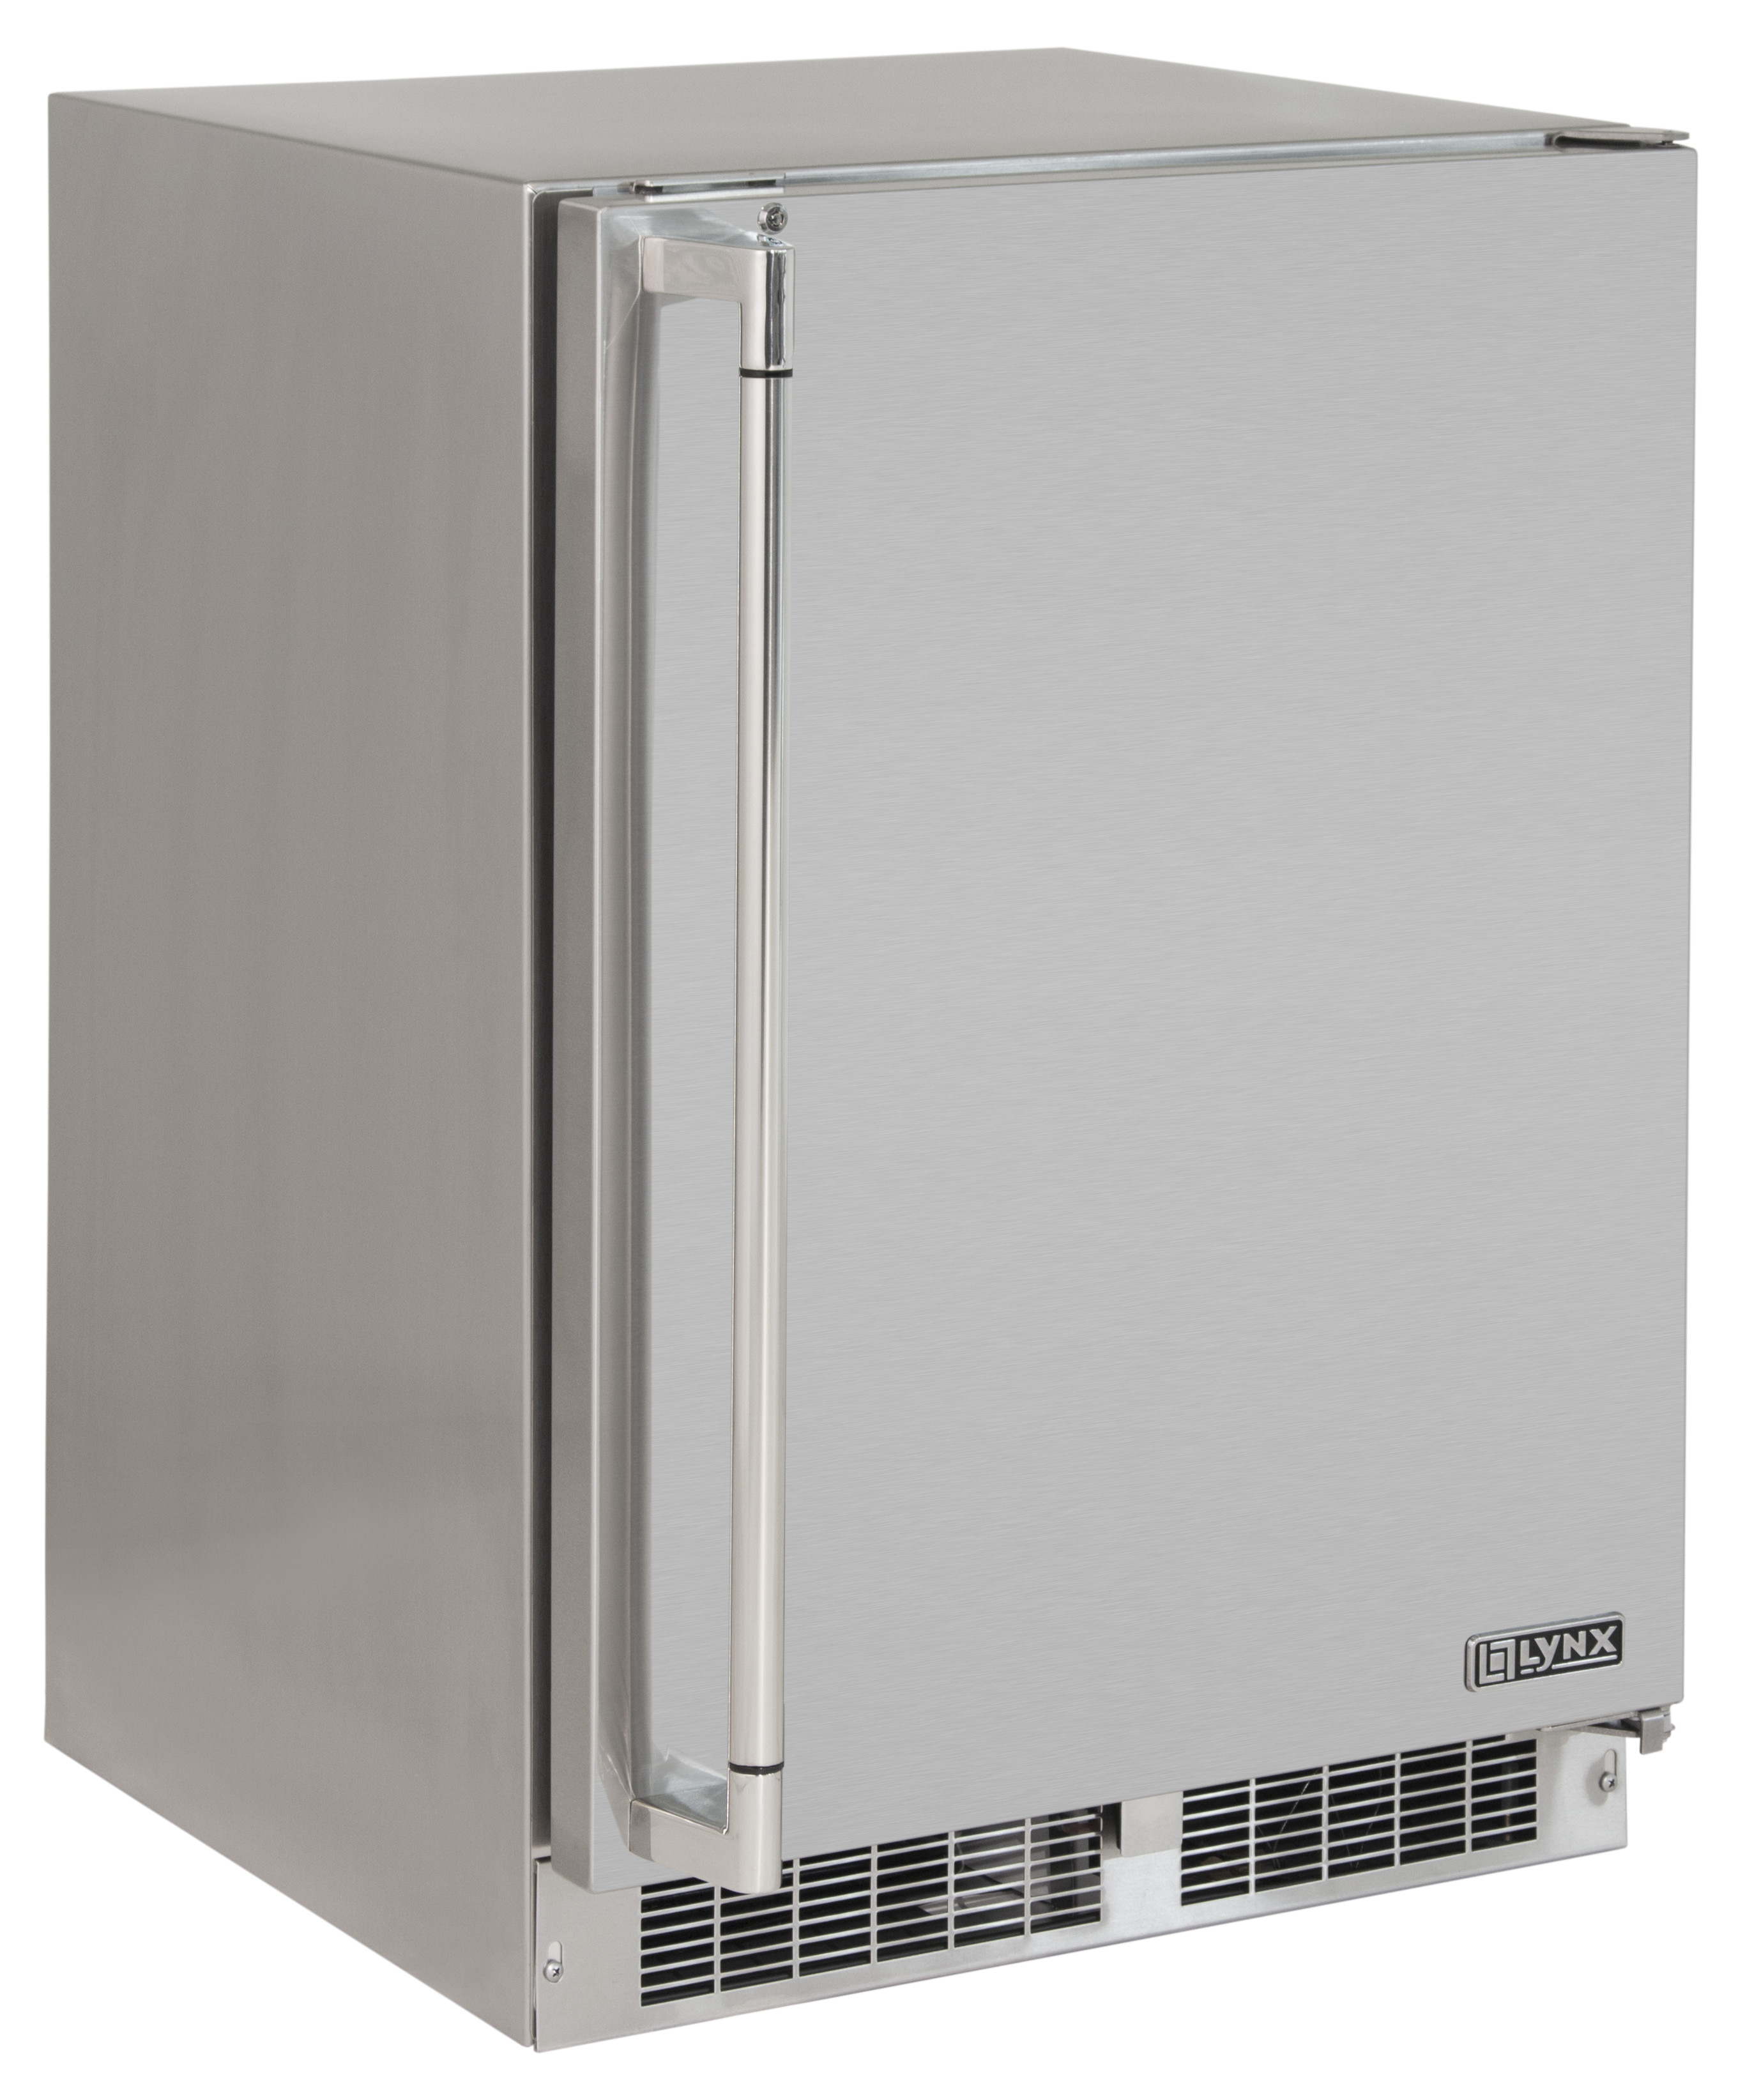 "Lynx Lynx 24"" Outdoor  Refrigerator, Right Hinge"